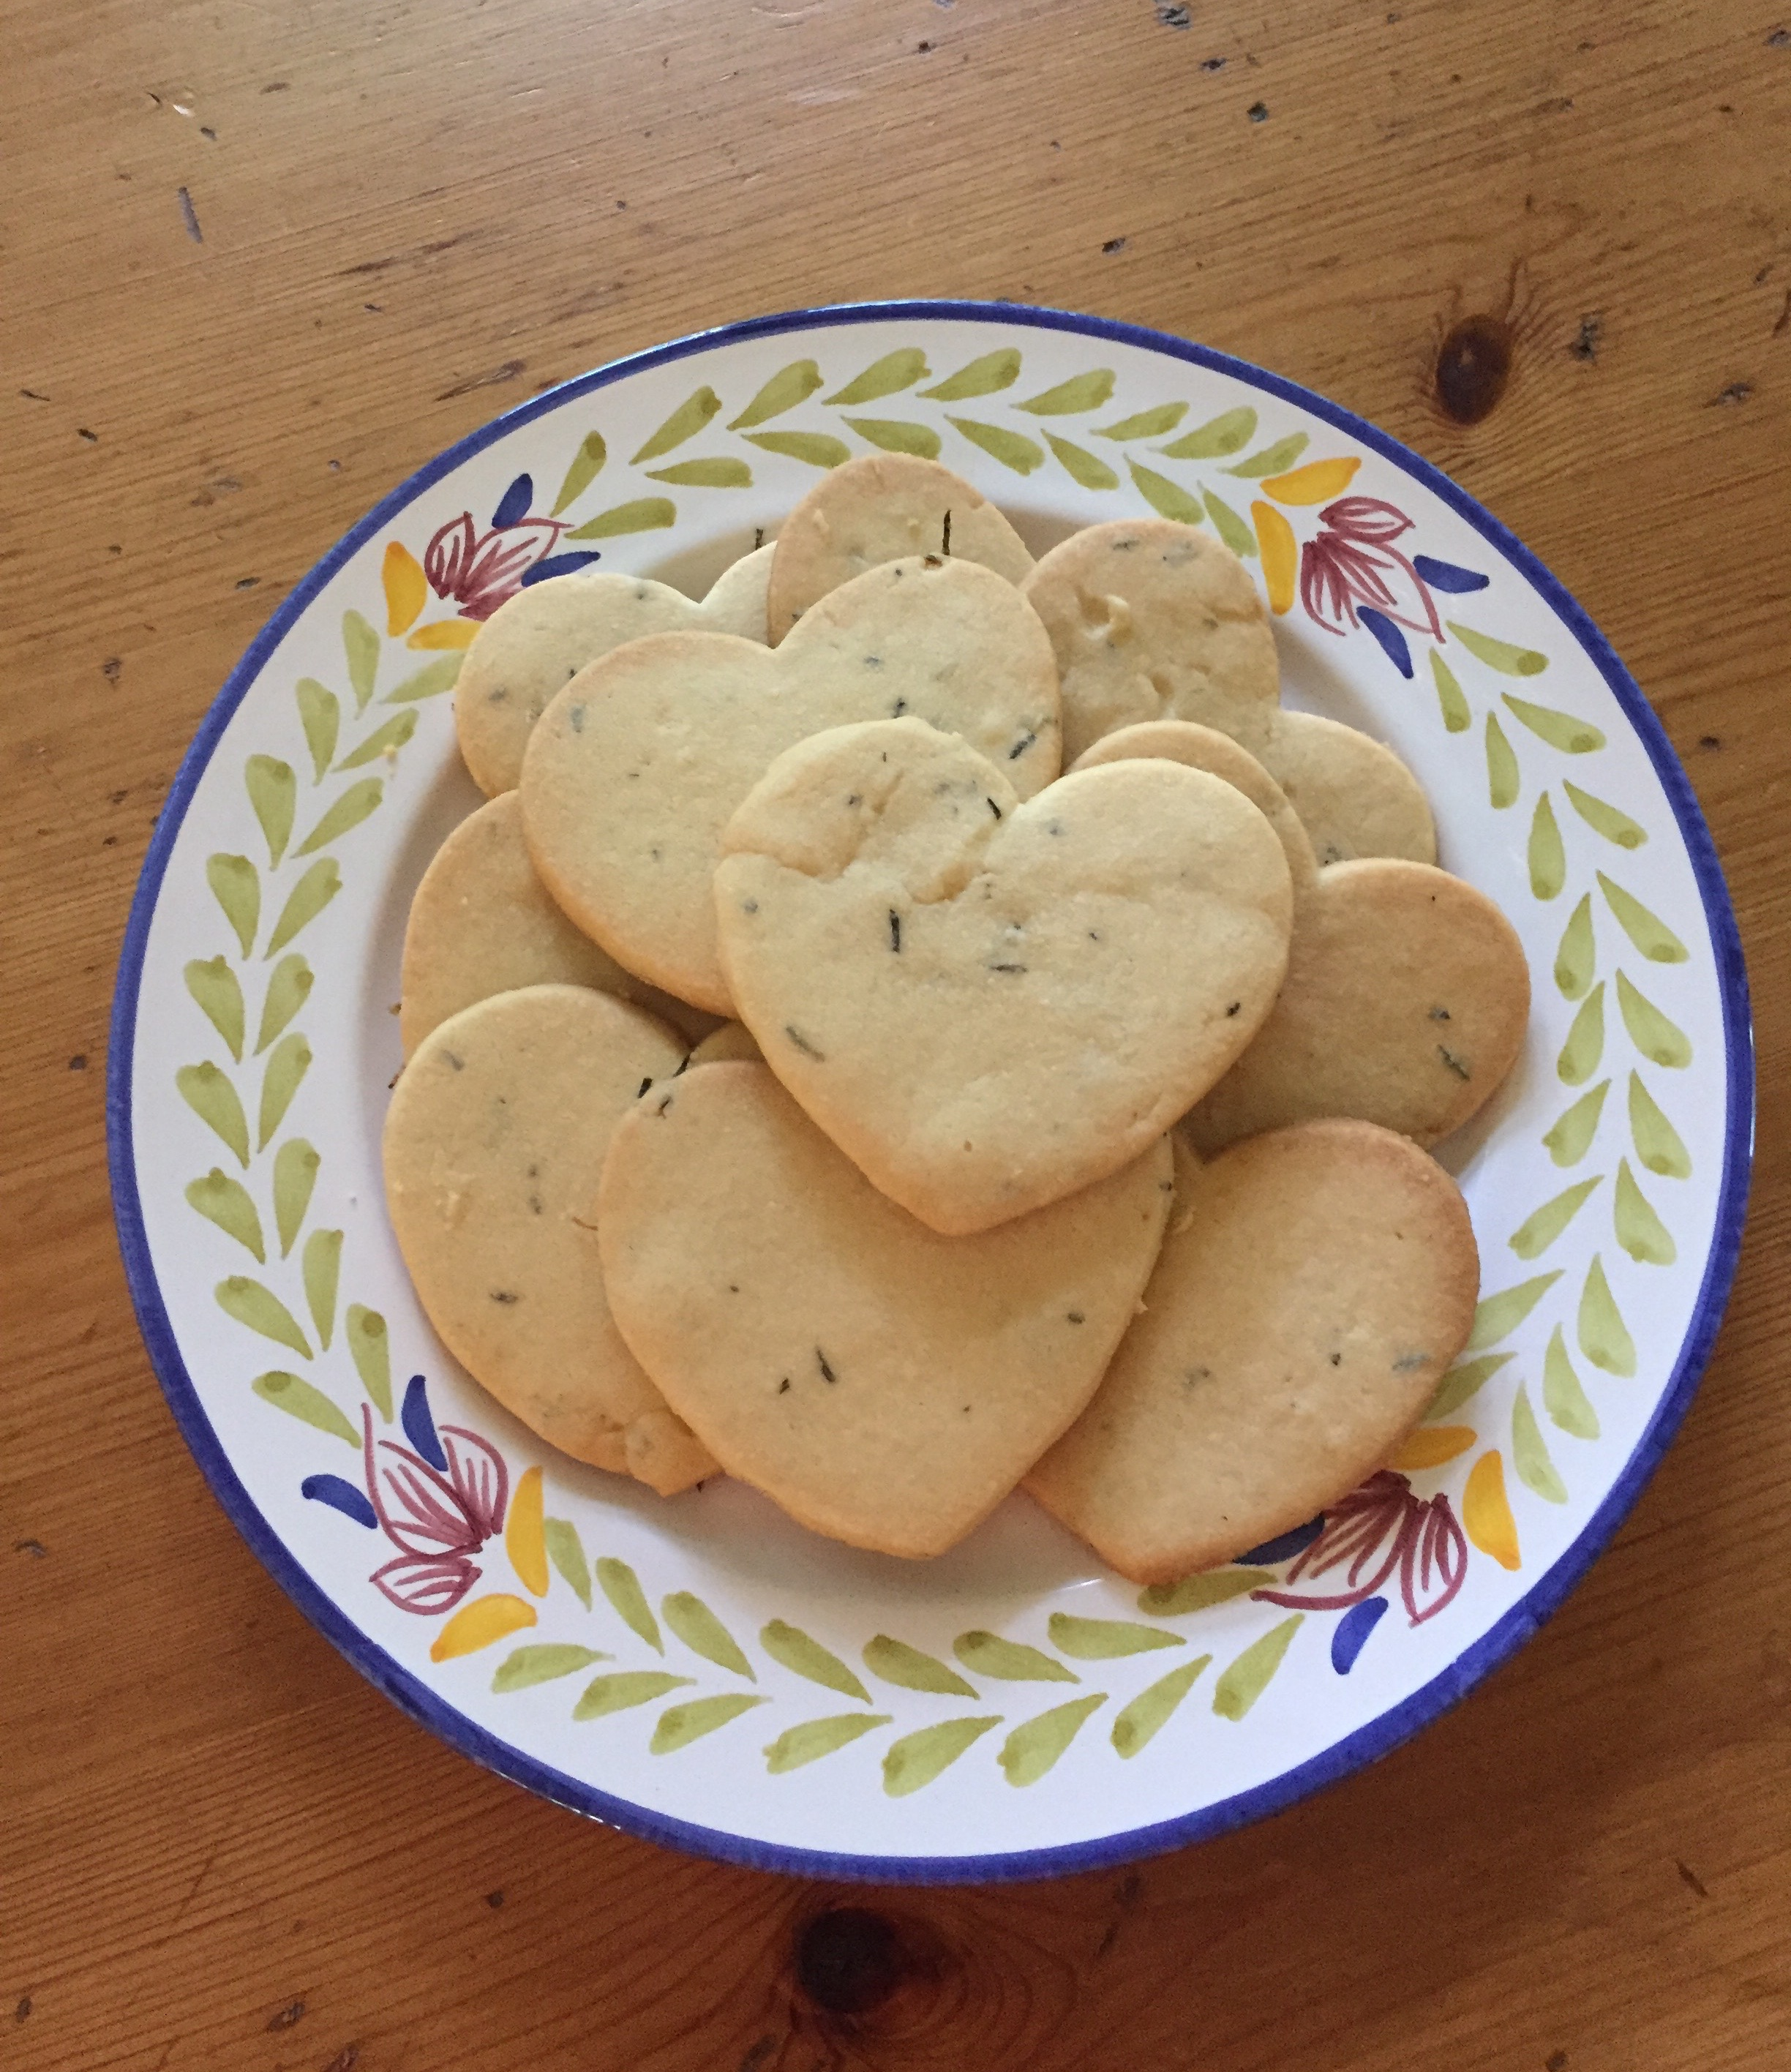 Massachusetts Center for the Book's first batch of Rosemary Shortbread, vanished quickly after photographed!